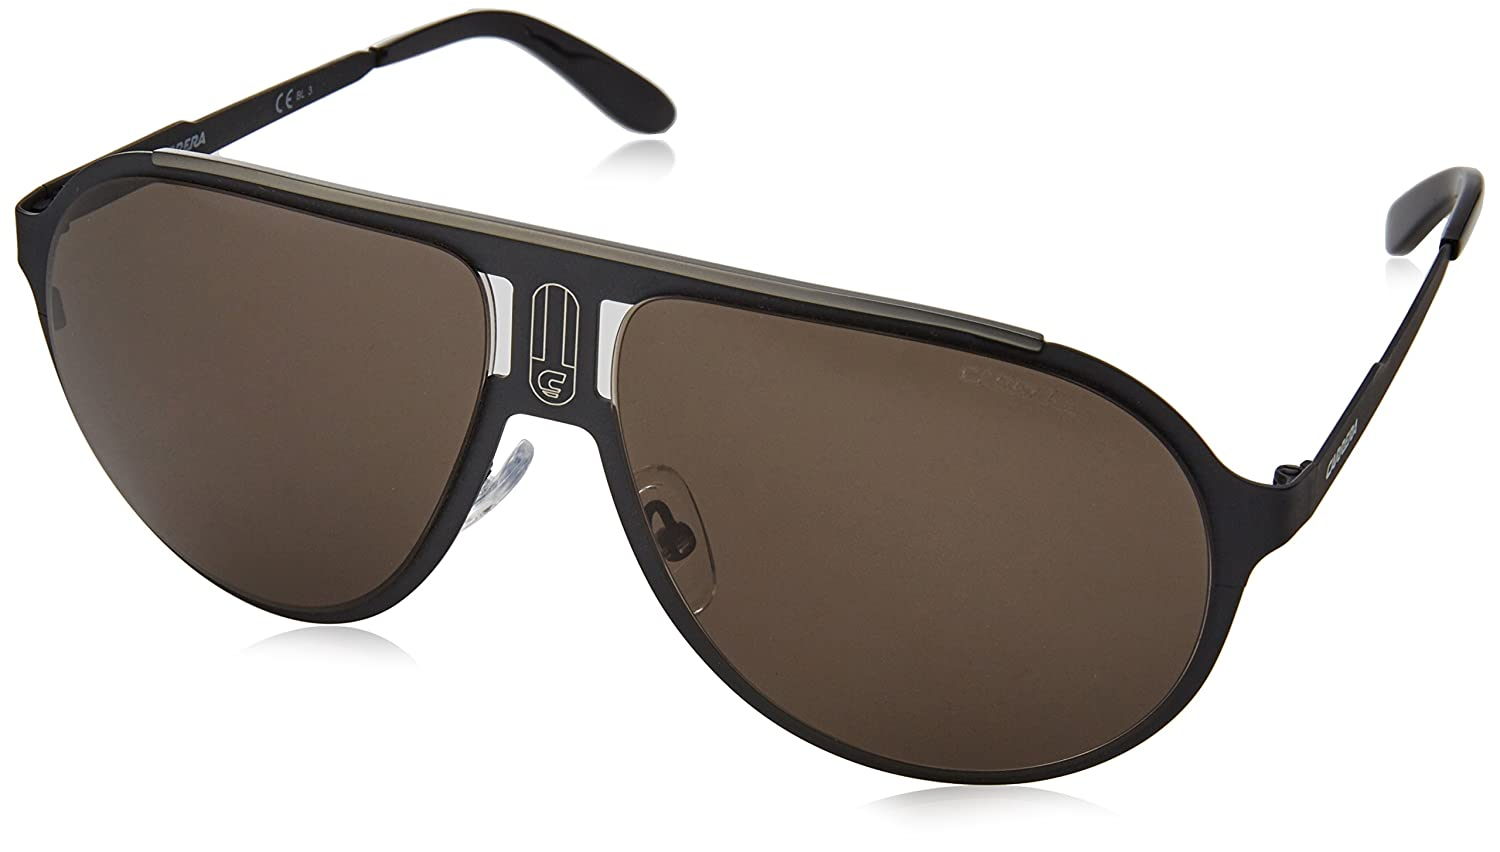 Carrera Champion/MT NR 003 Gafas de sol, Negro (Matt Black/Brown Grey), 61 Unisex-Adulto